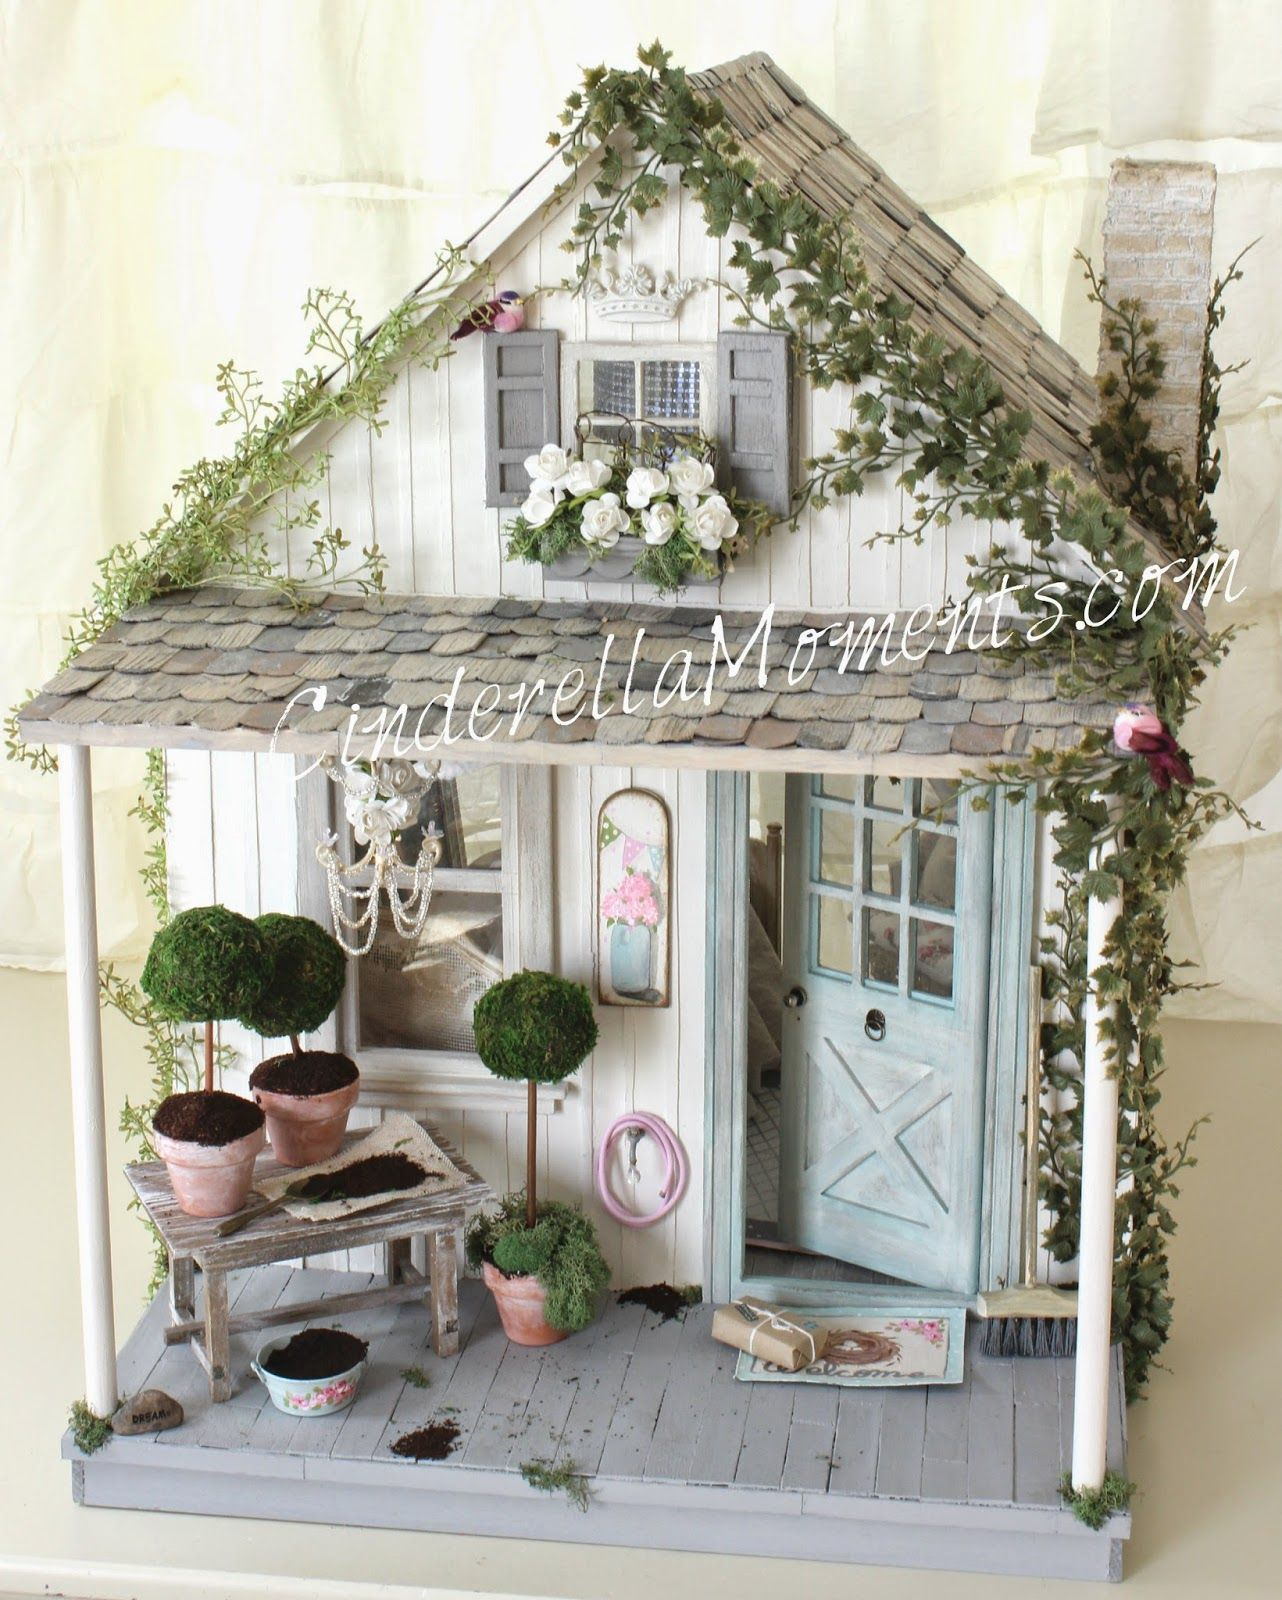 cinderella moments shabby blythe custom dollhouse my style pinterest feengarten miniatur. Black Bedroom Furniture Sets. Home Design Ideas